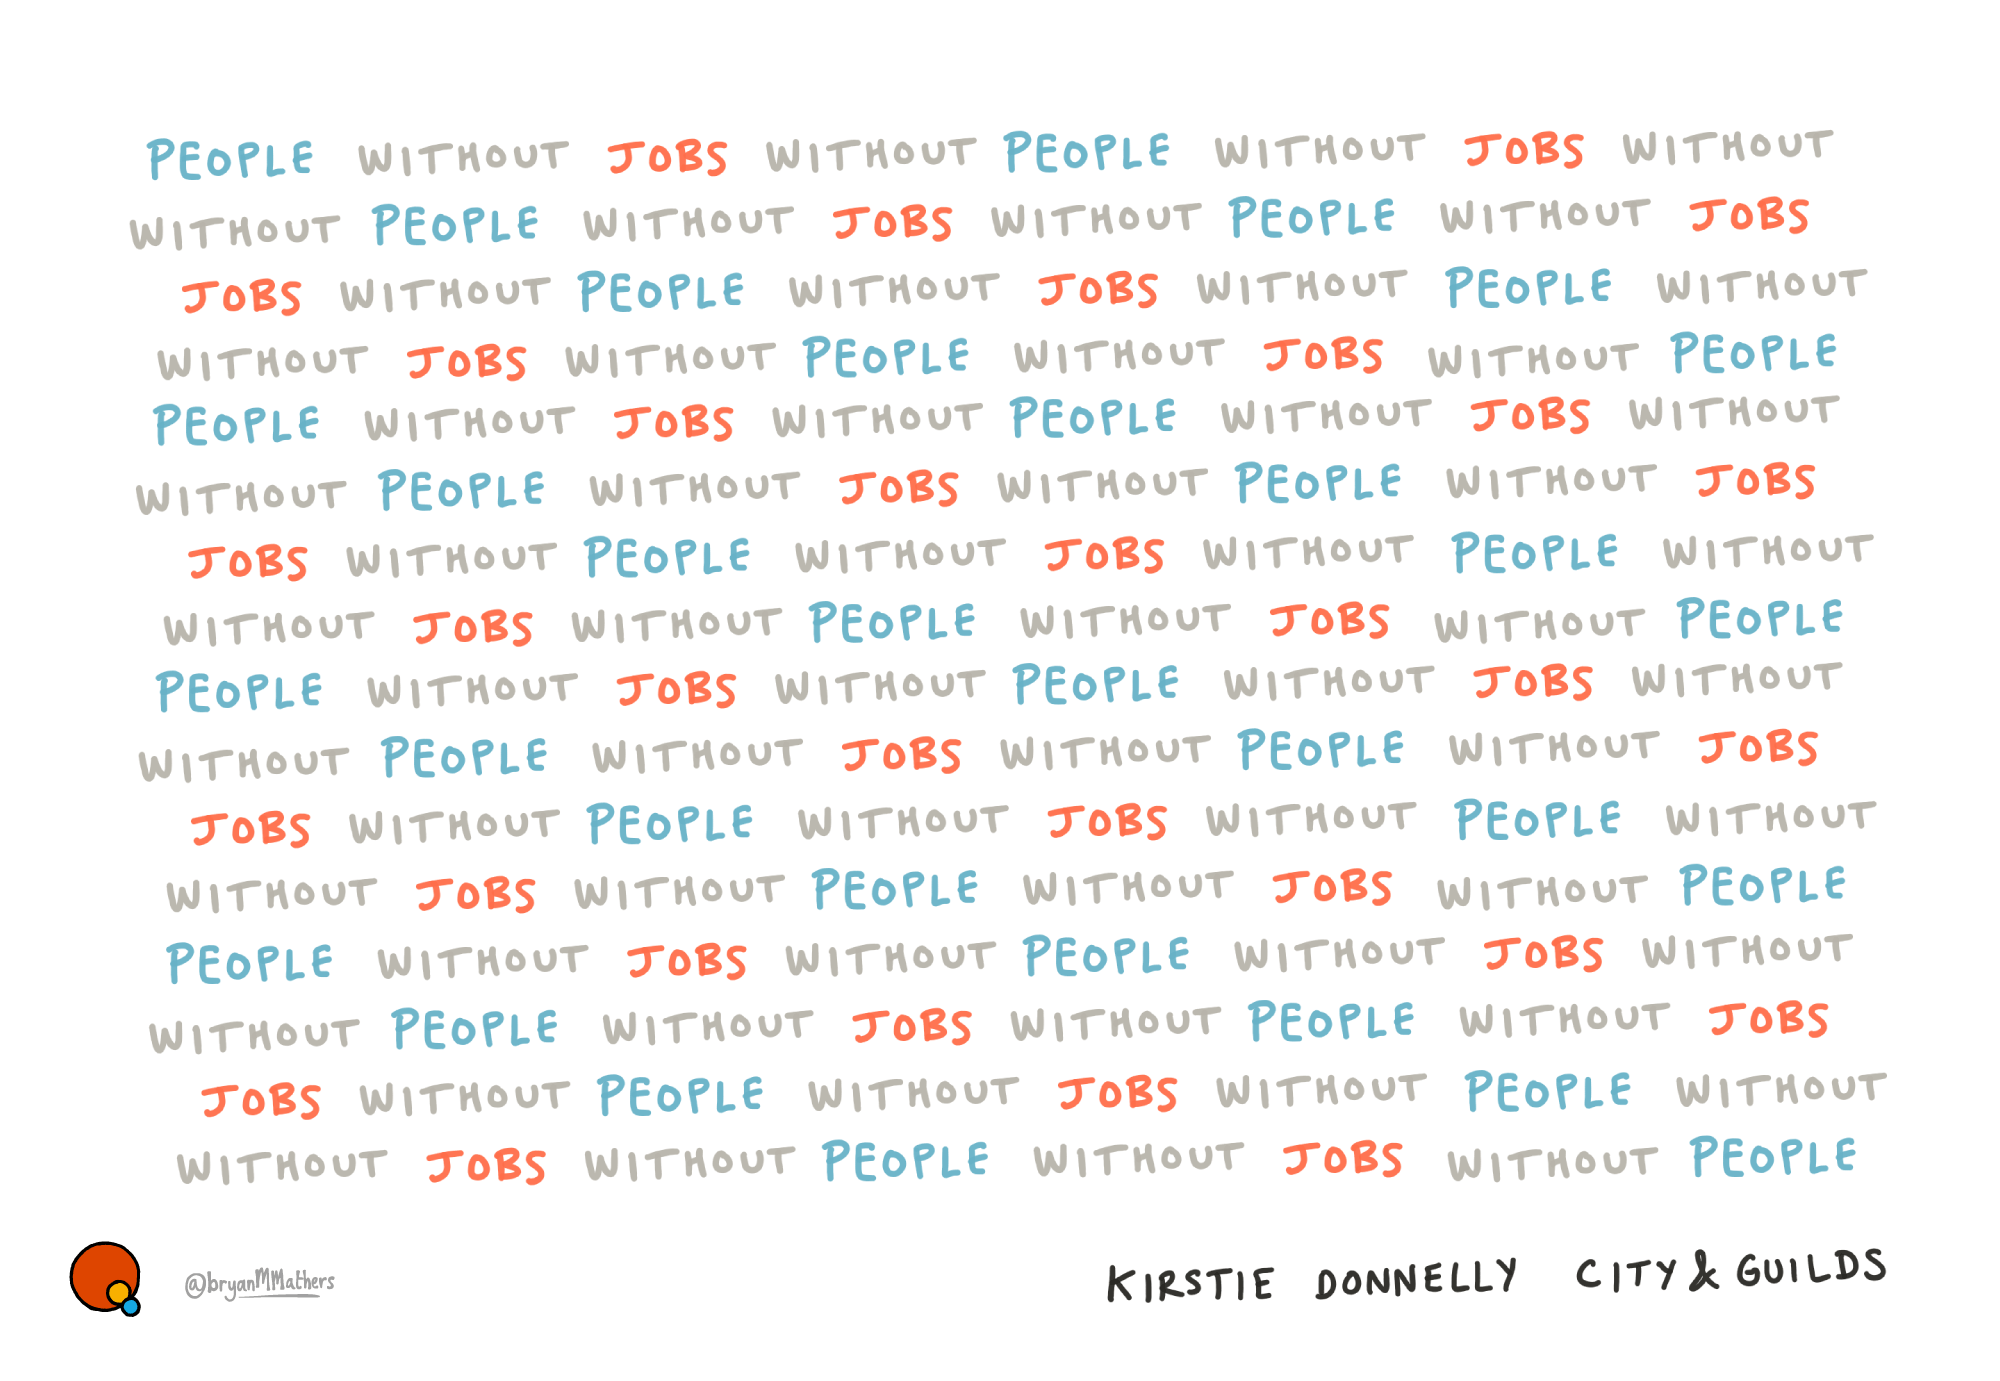 People and Jobs